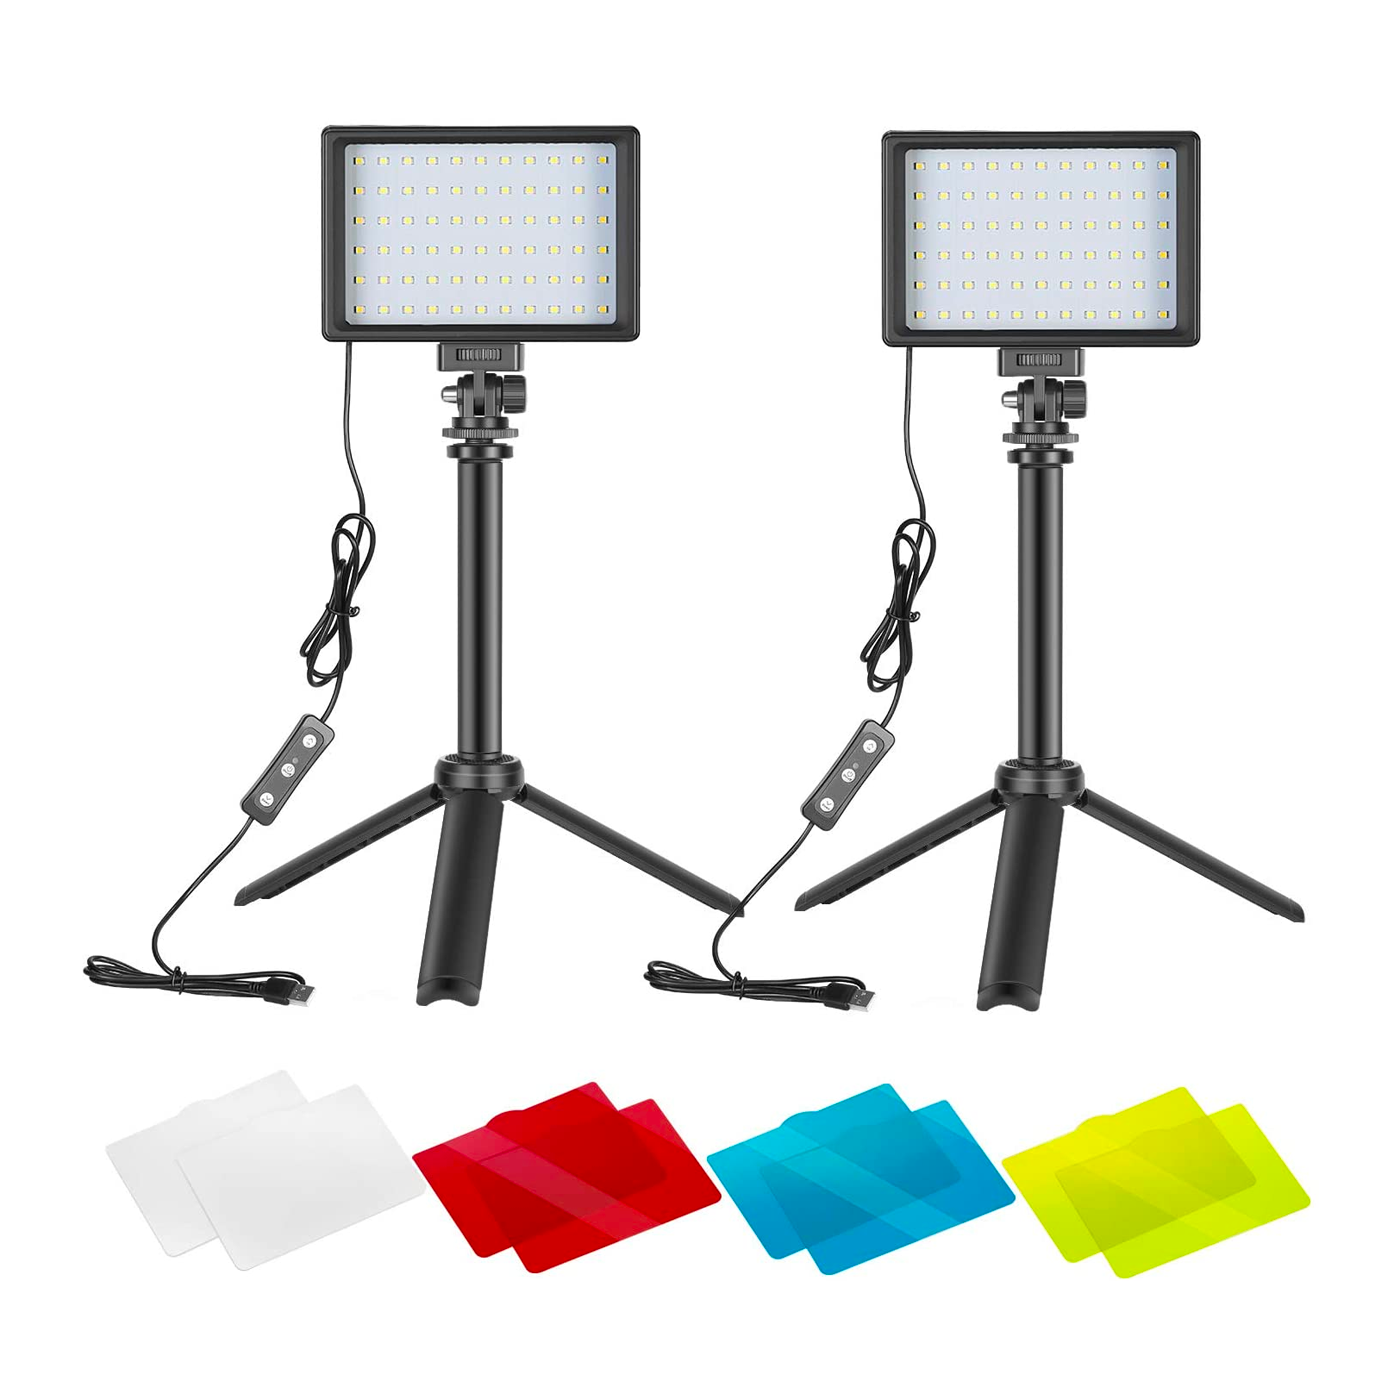 An image of the Neewer photography lighting kit on a white background